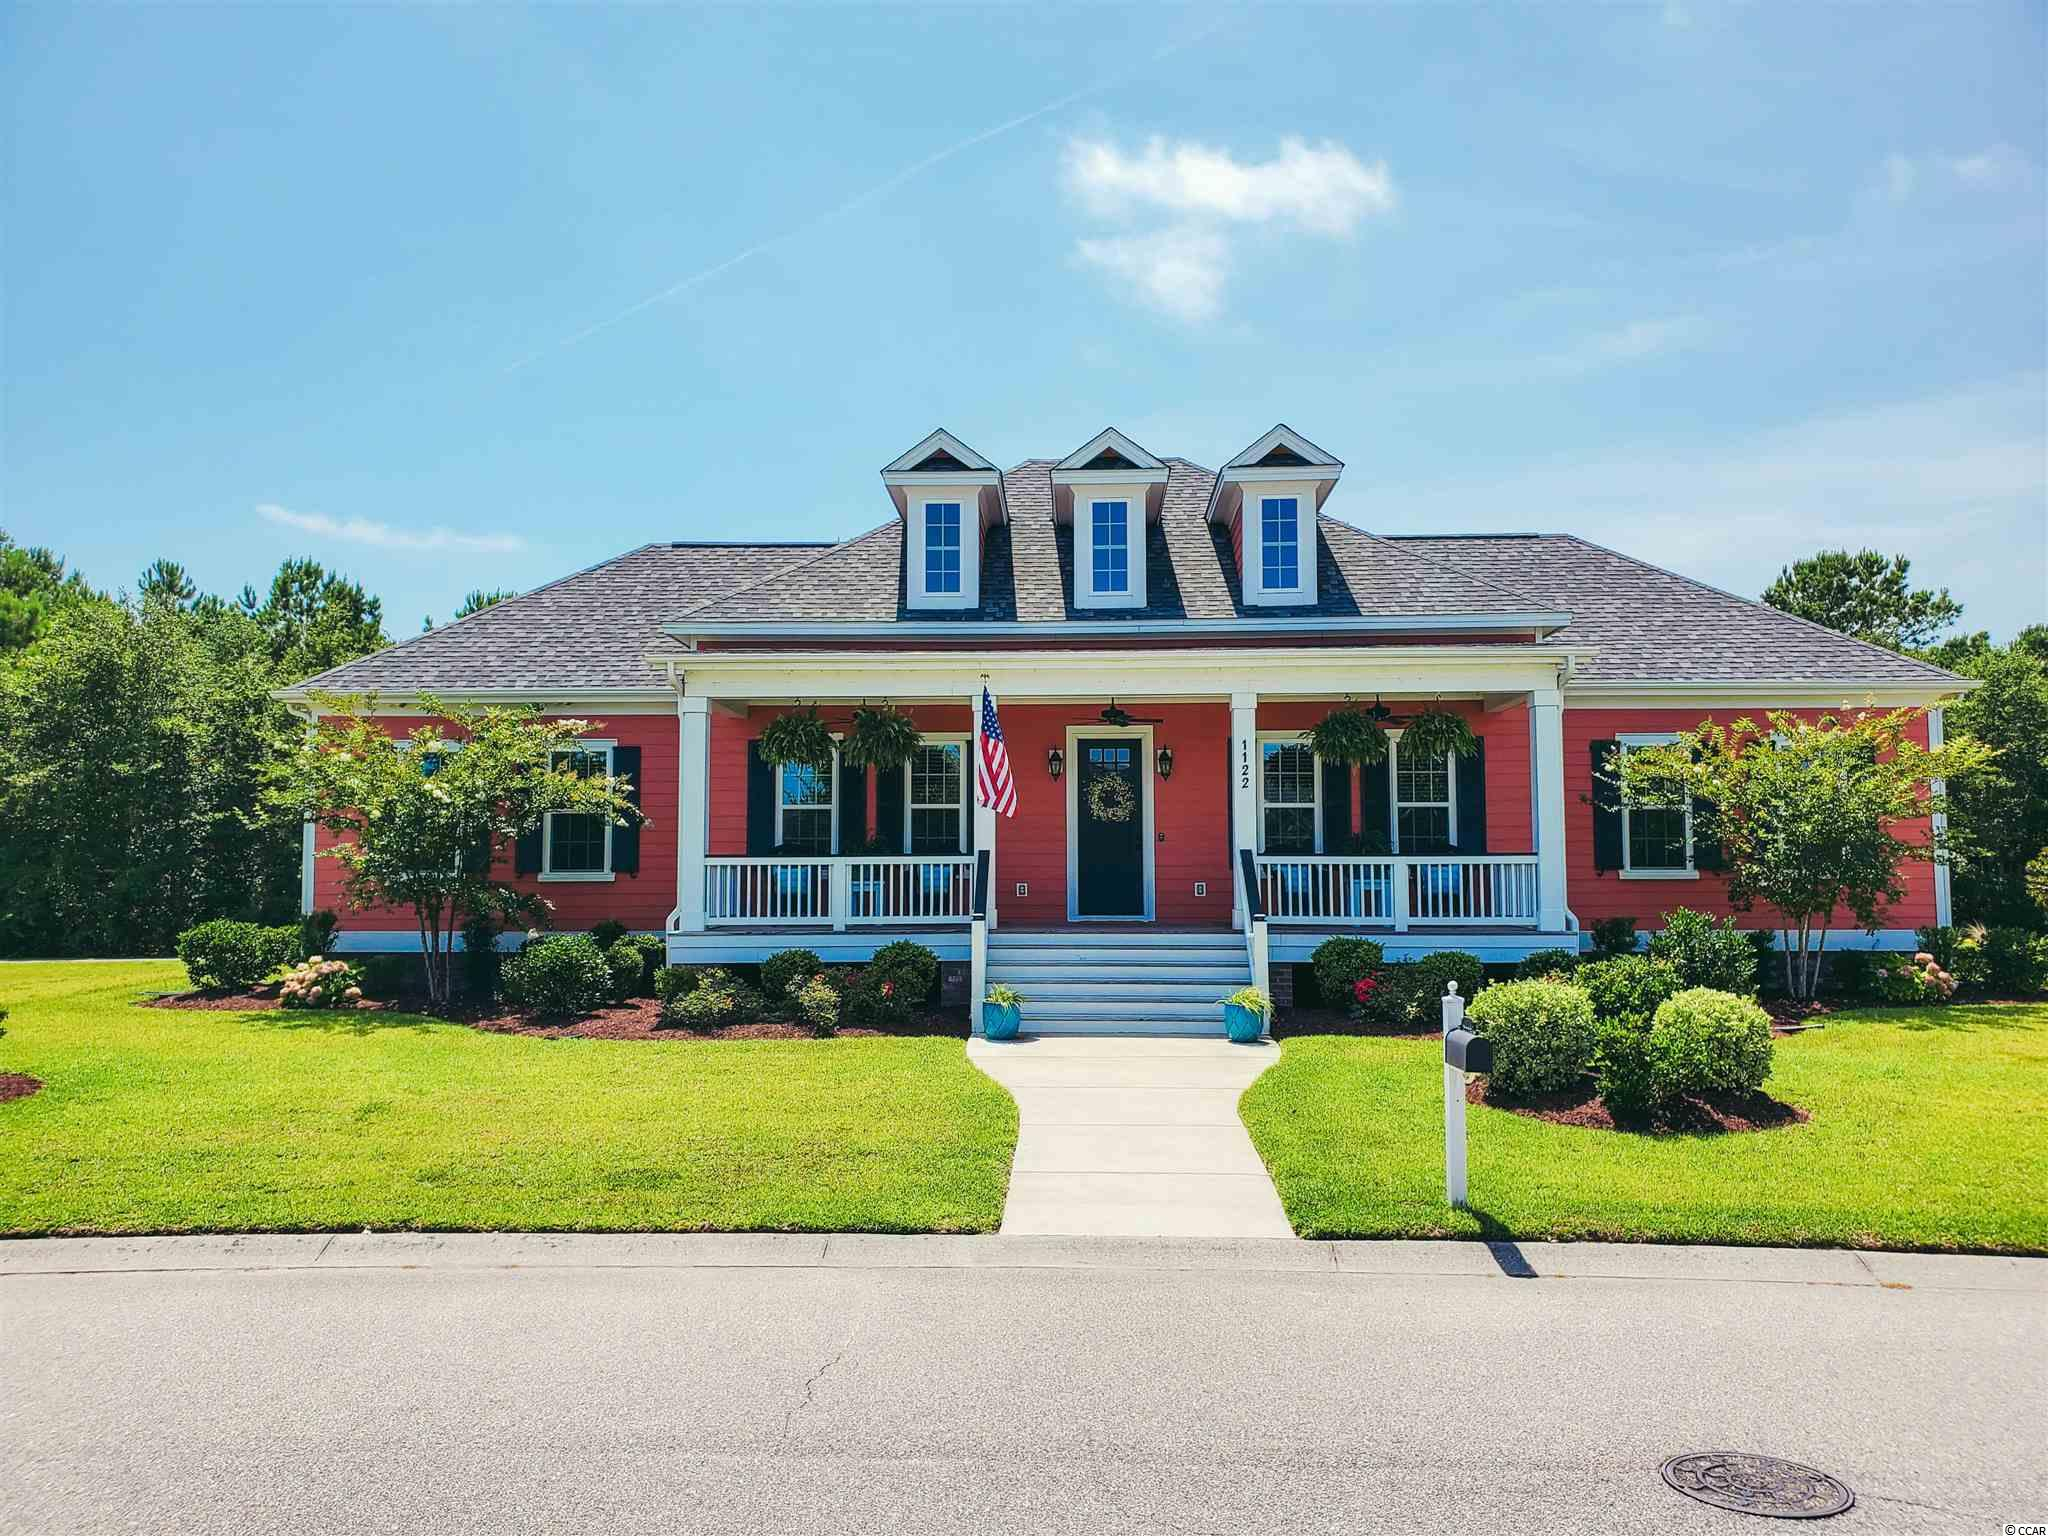 Absolutely stunning 3BR/3.5BA ranch in the beautiful Charleston Landing neighborhood - just minutes to Cherry Grove Beach!  Believe us when we say that this home is straight out of a magazine!  From top to bottom, it is finished beautifully and well maintained.  From the custom trim details, to the oversized barn doors to the designer tile work - everything about this home screams Southern Charm.  The kitchen has classic quartz countertops, stainless appliances, huge island, custom pantry door, built in desk area, beadboard ceiling and more!  And let's talk about the master bedroom - wow!  It is so spacious with plenty of room for a sitting area and king sized bed.  The his and hers walk in closets are large as well.  And the master bath - this is truly the icing on the cake.  The oversized walk in shower, stand alone soaking tub, dual vanities, beautiful paneling, private toilet room and more - this bathroom is everything you are looking for.  The secondary bedrooms are both large as well with private bathrooms which also showcase the most elegant upscale finishes.  A quaint half bath is convenient for your guests.  You might actually like doing laundry in this laundry room which has lots of natural light, beautiful tile, and a cheery pop of color!  The garage off of the laundry room is spacious and has an access door to the rear yard.  Oversized porches on the front and rear of the home give you plenty of opportunities to sit outside and enjoy the beautiful scenery.  For your convenience, there are hook ups for a propane tank and generator out back.  Charleston Landing has a lovely community center with a pool overlooking the marsh.  You can even see the ocean front condo buildings - that is just how close you are to the beach!  There are also gazebos on the lakes to enjoy as well as a playground and boat storage area. With the proximity to the beach, beautiful community and absolutely stunning home - this one will not be on the market long.  Hurry and schedule yo